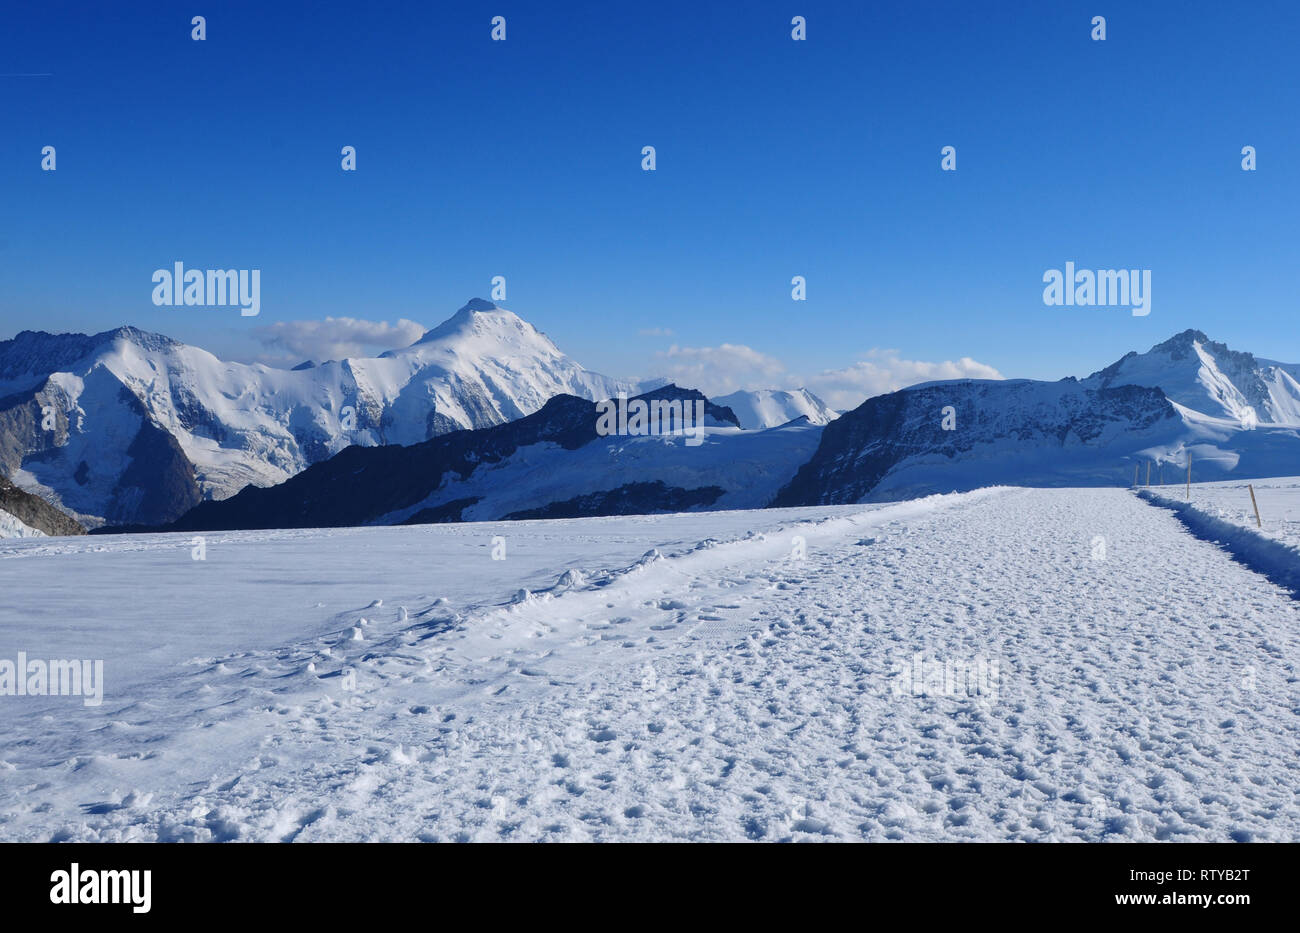 Switzerland: Mönchshut mountain panoramic view to the melting glaciers and permafrost due to global climate change - Stock Image